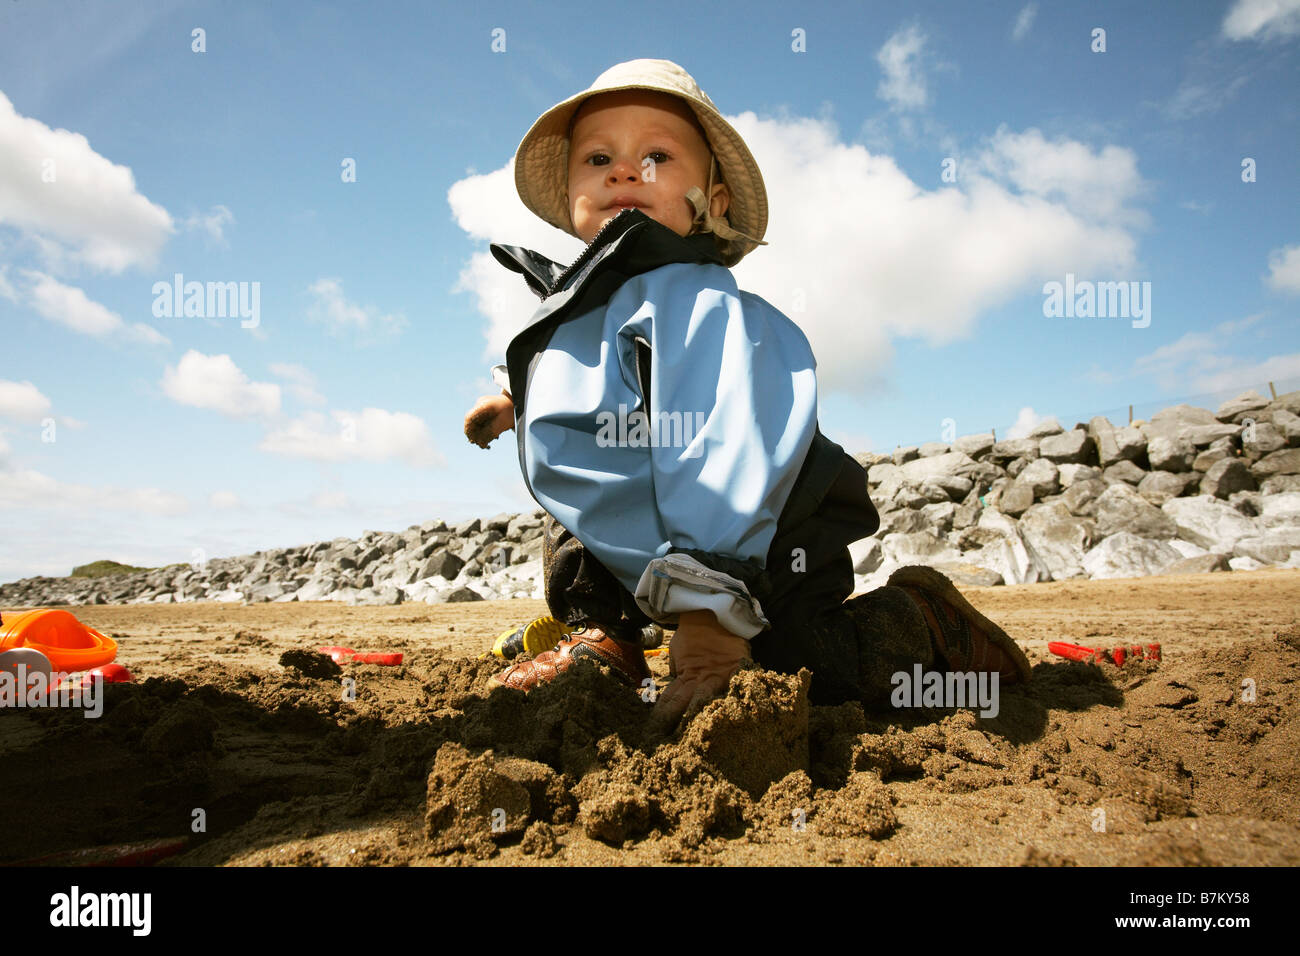 Baby playing on beach in wet sand. Wearing cagoule and hat. - Stock Image